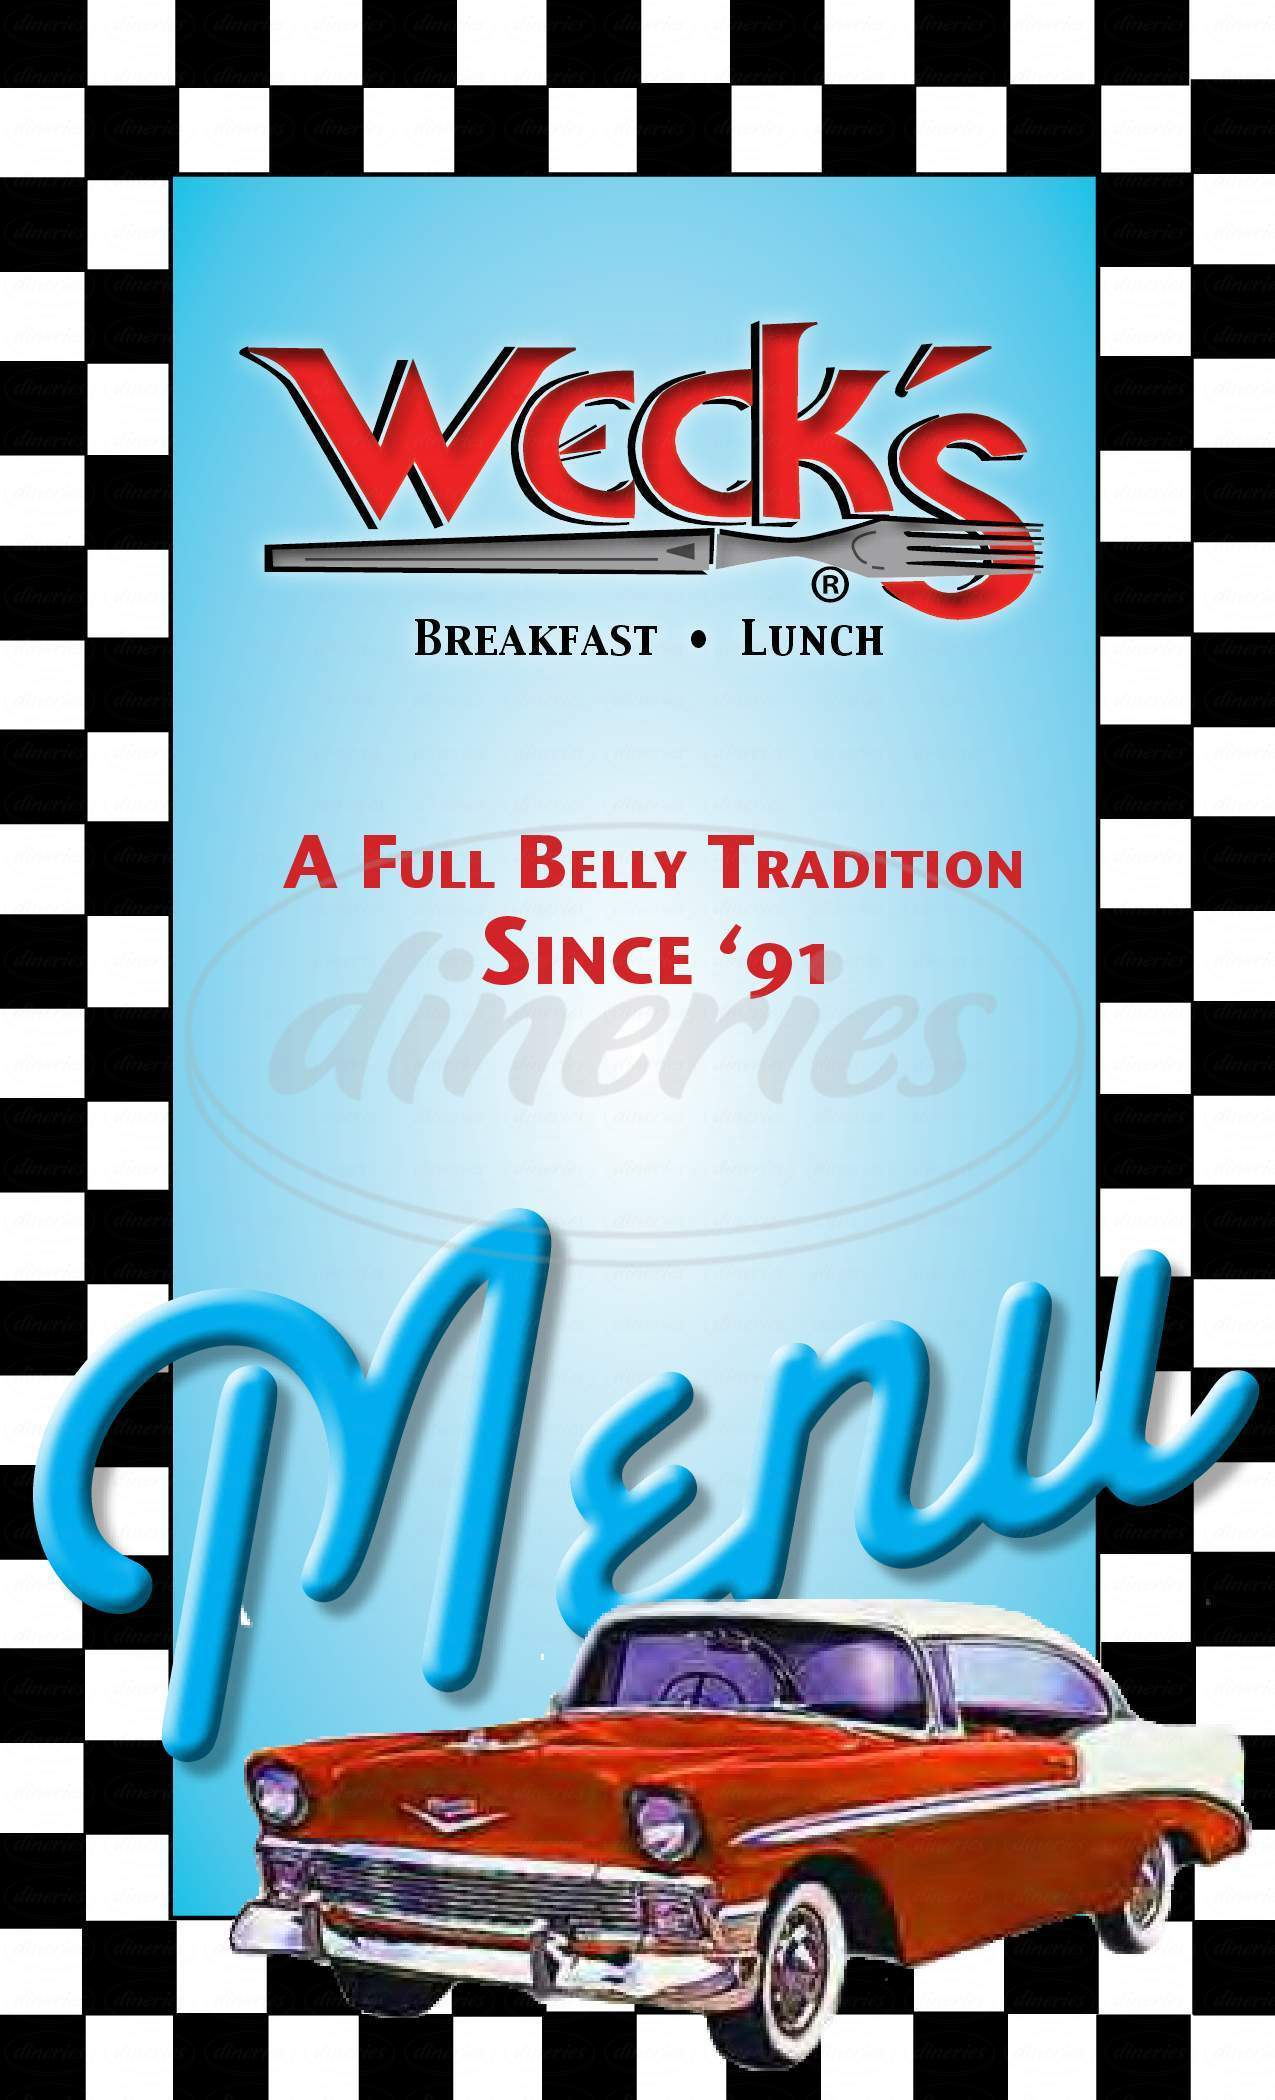 menu for Weck's